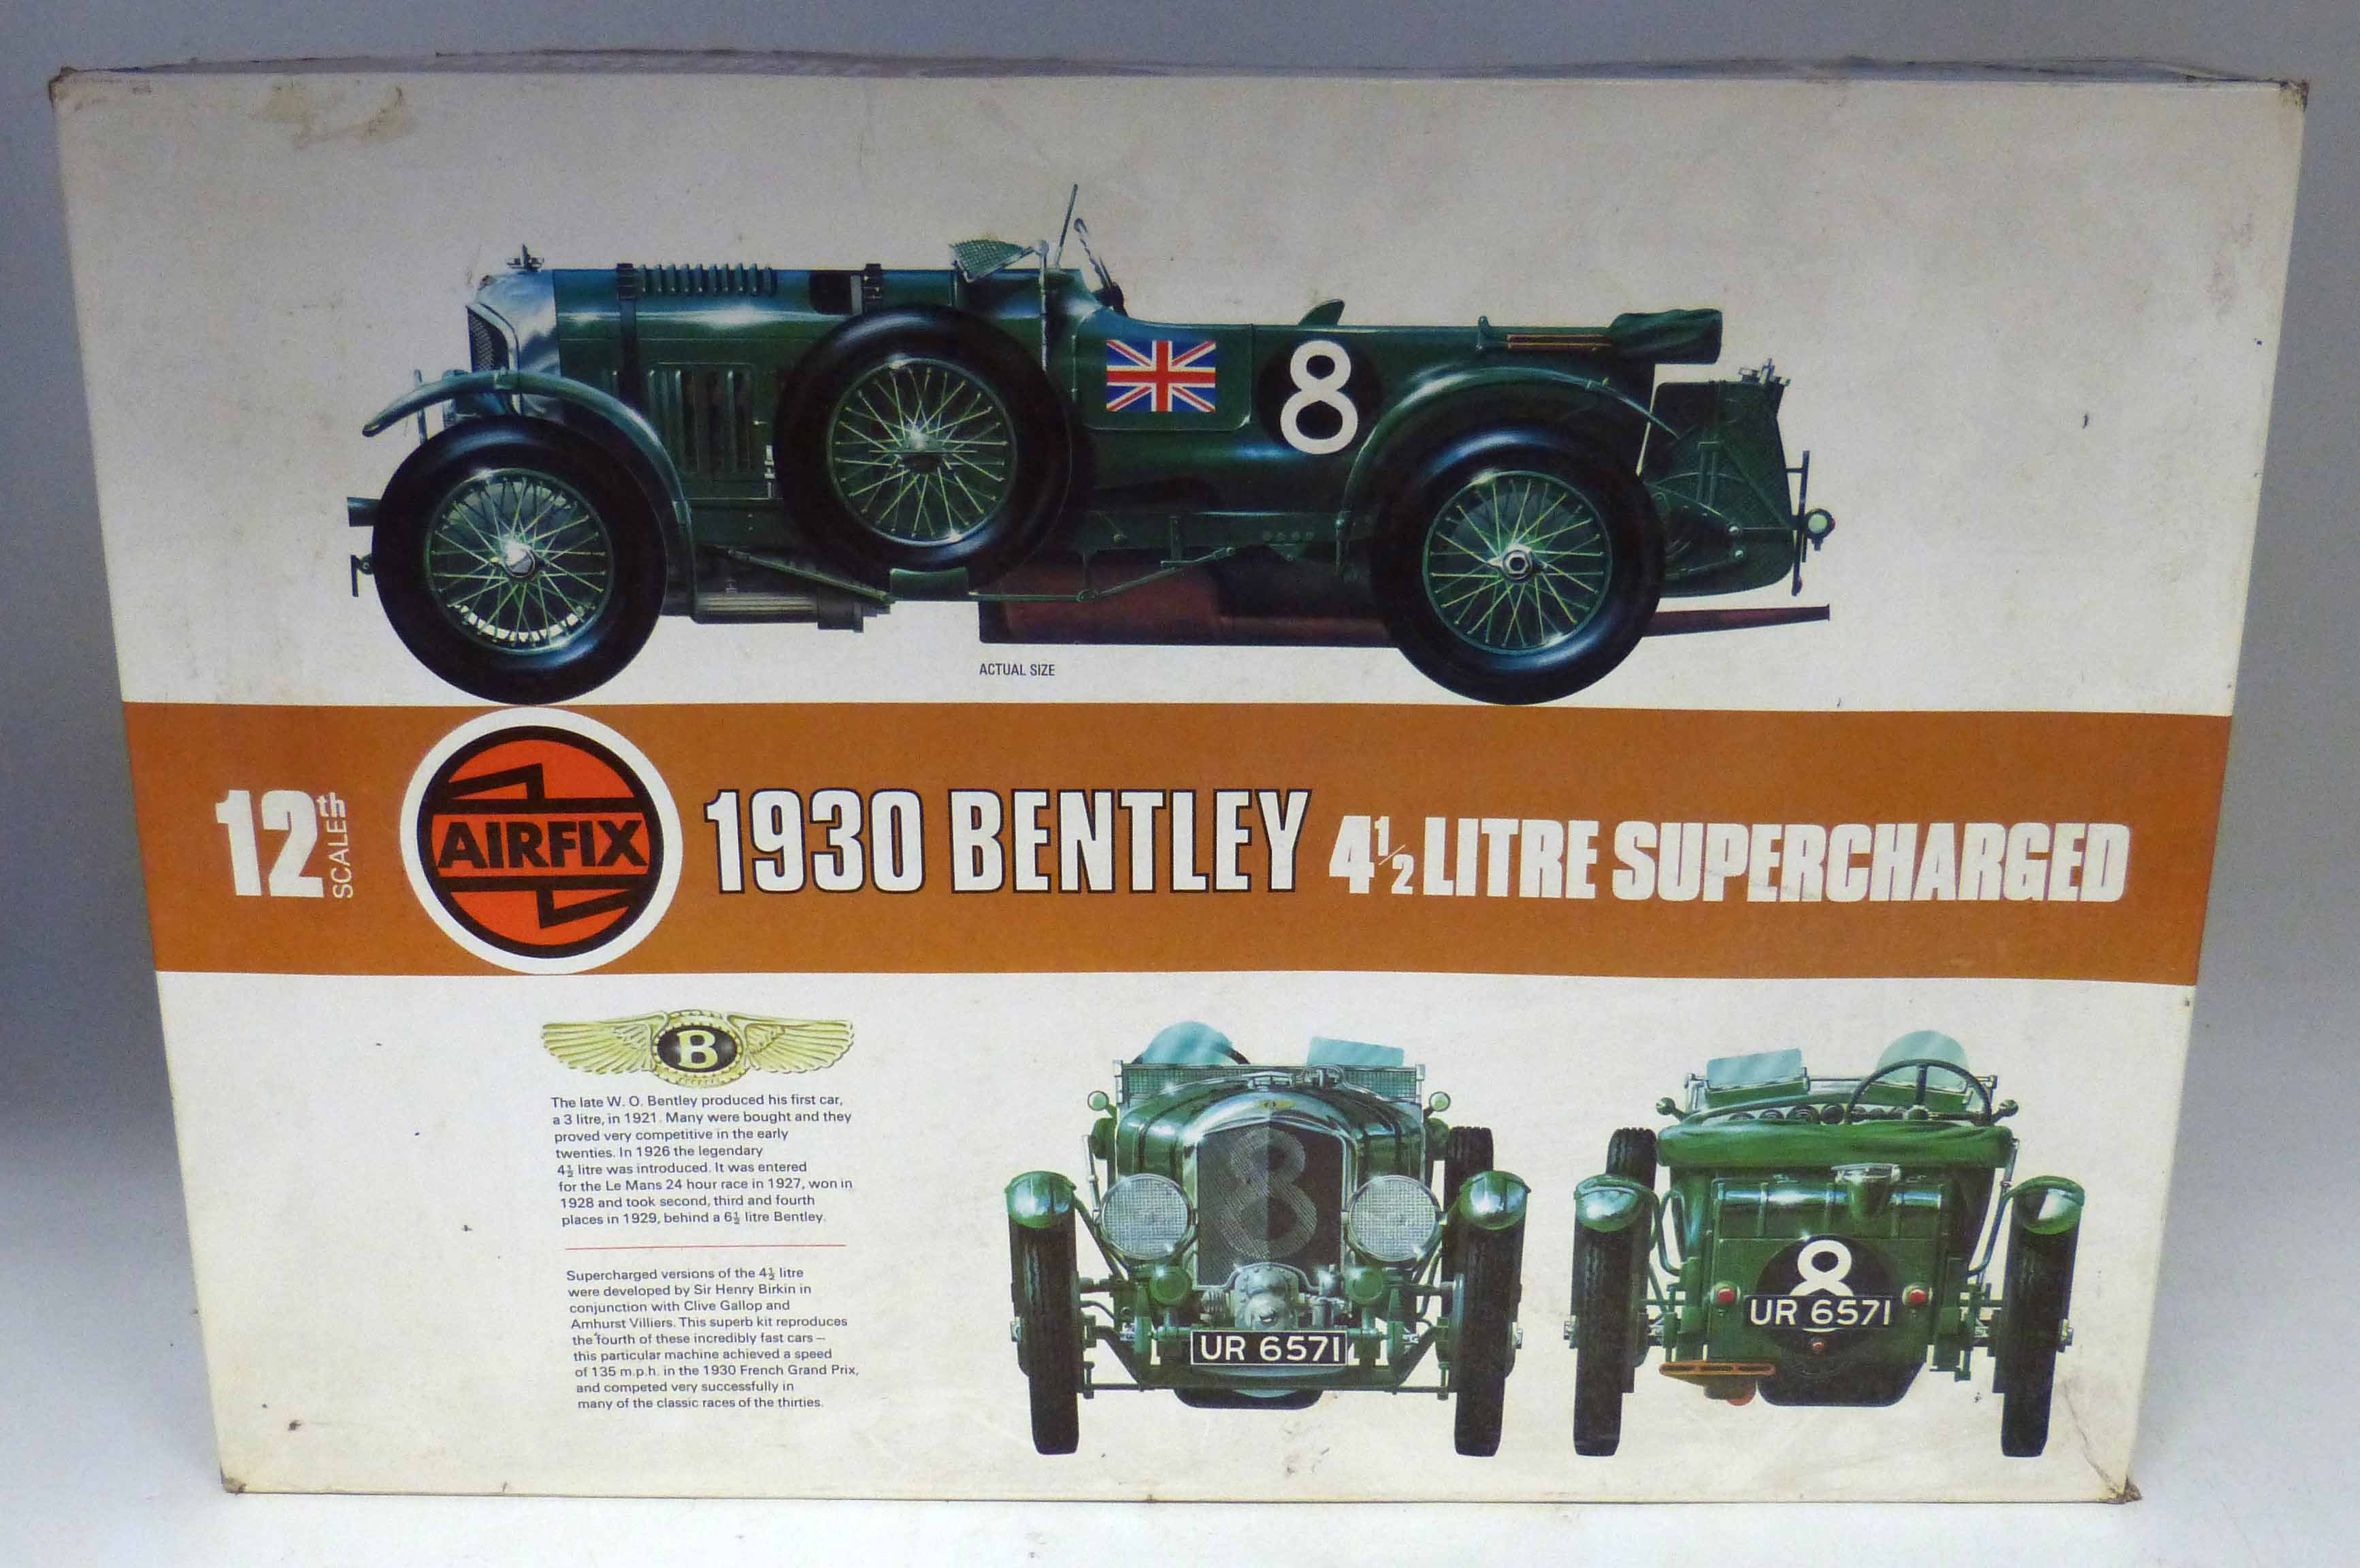 Lot 90 - Boxed Airfix 1930 Bentley, 4 1/2 litre supercharger We are unable to do condition reports on our